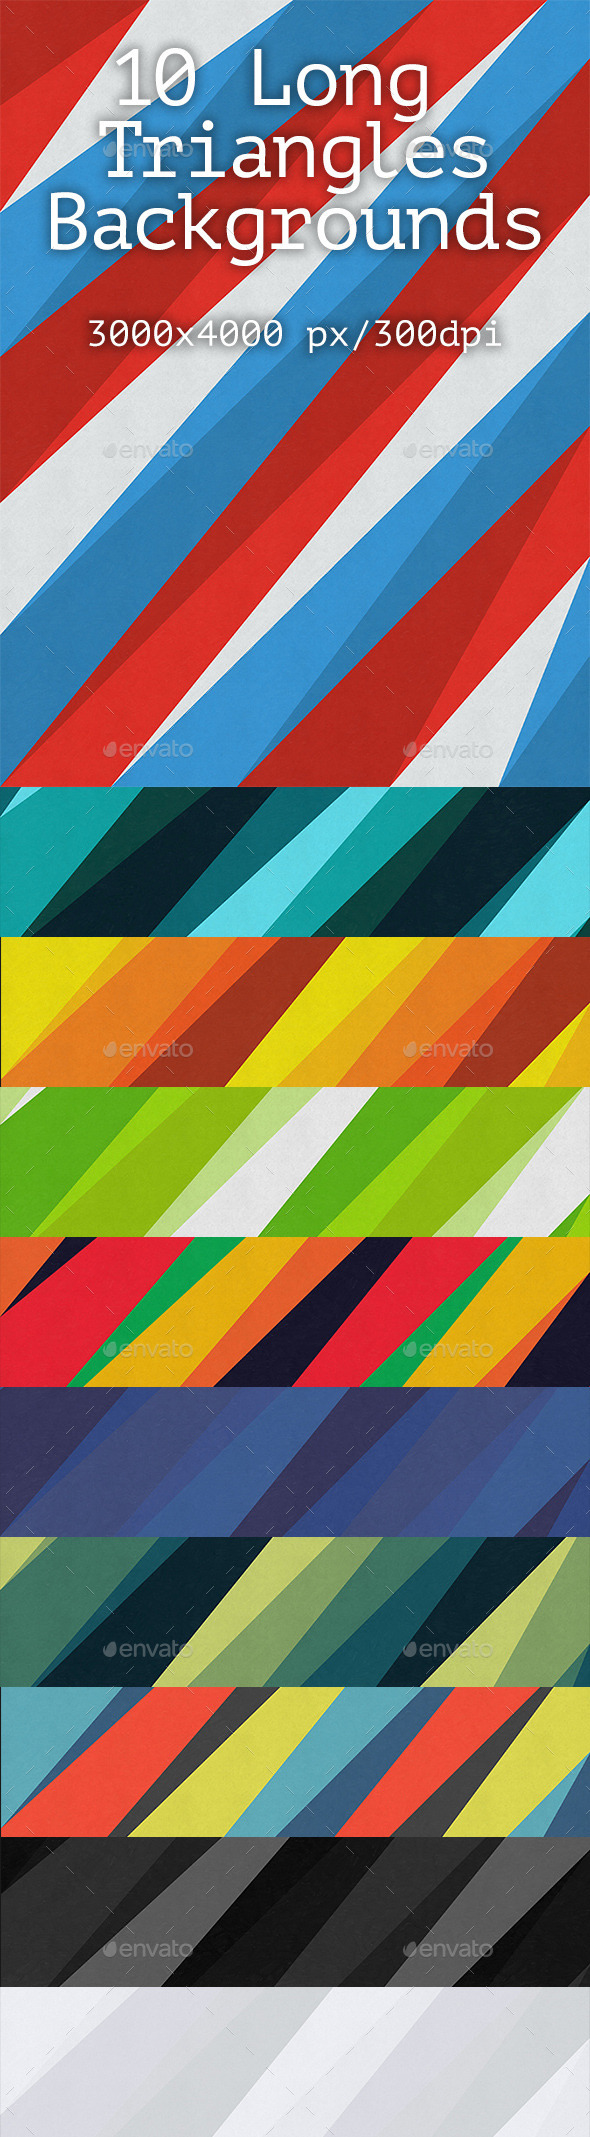 10 Long Triangles Backgrounds